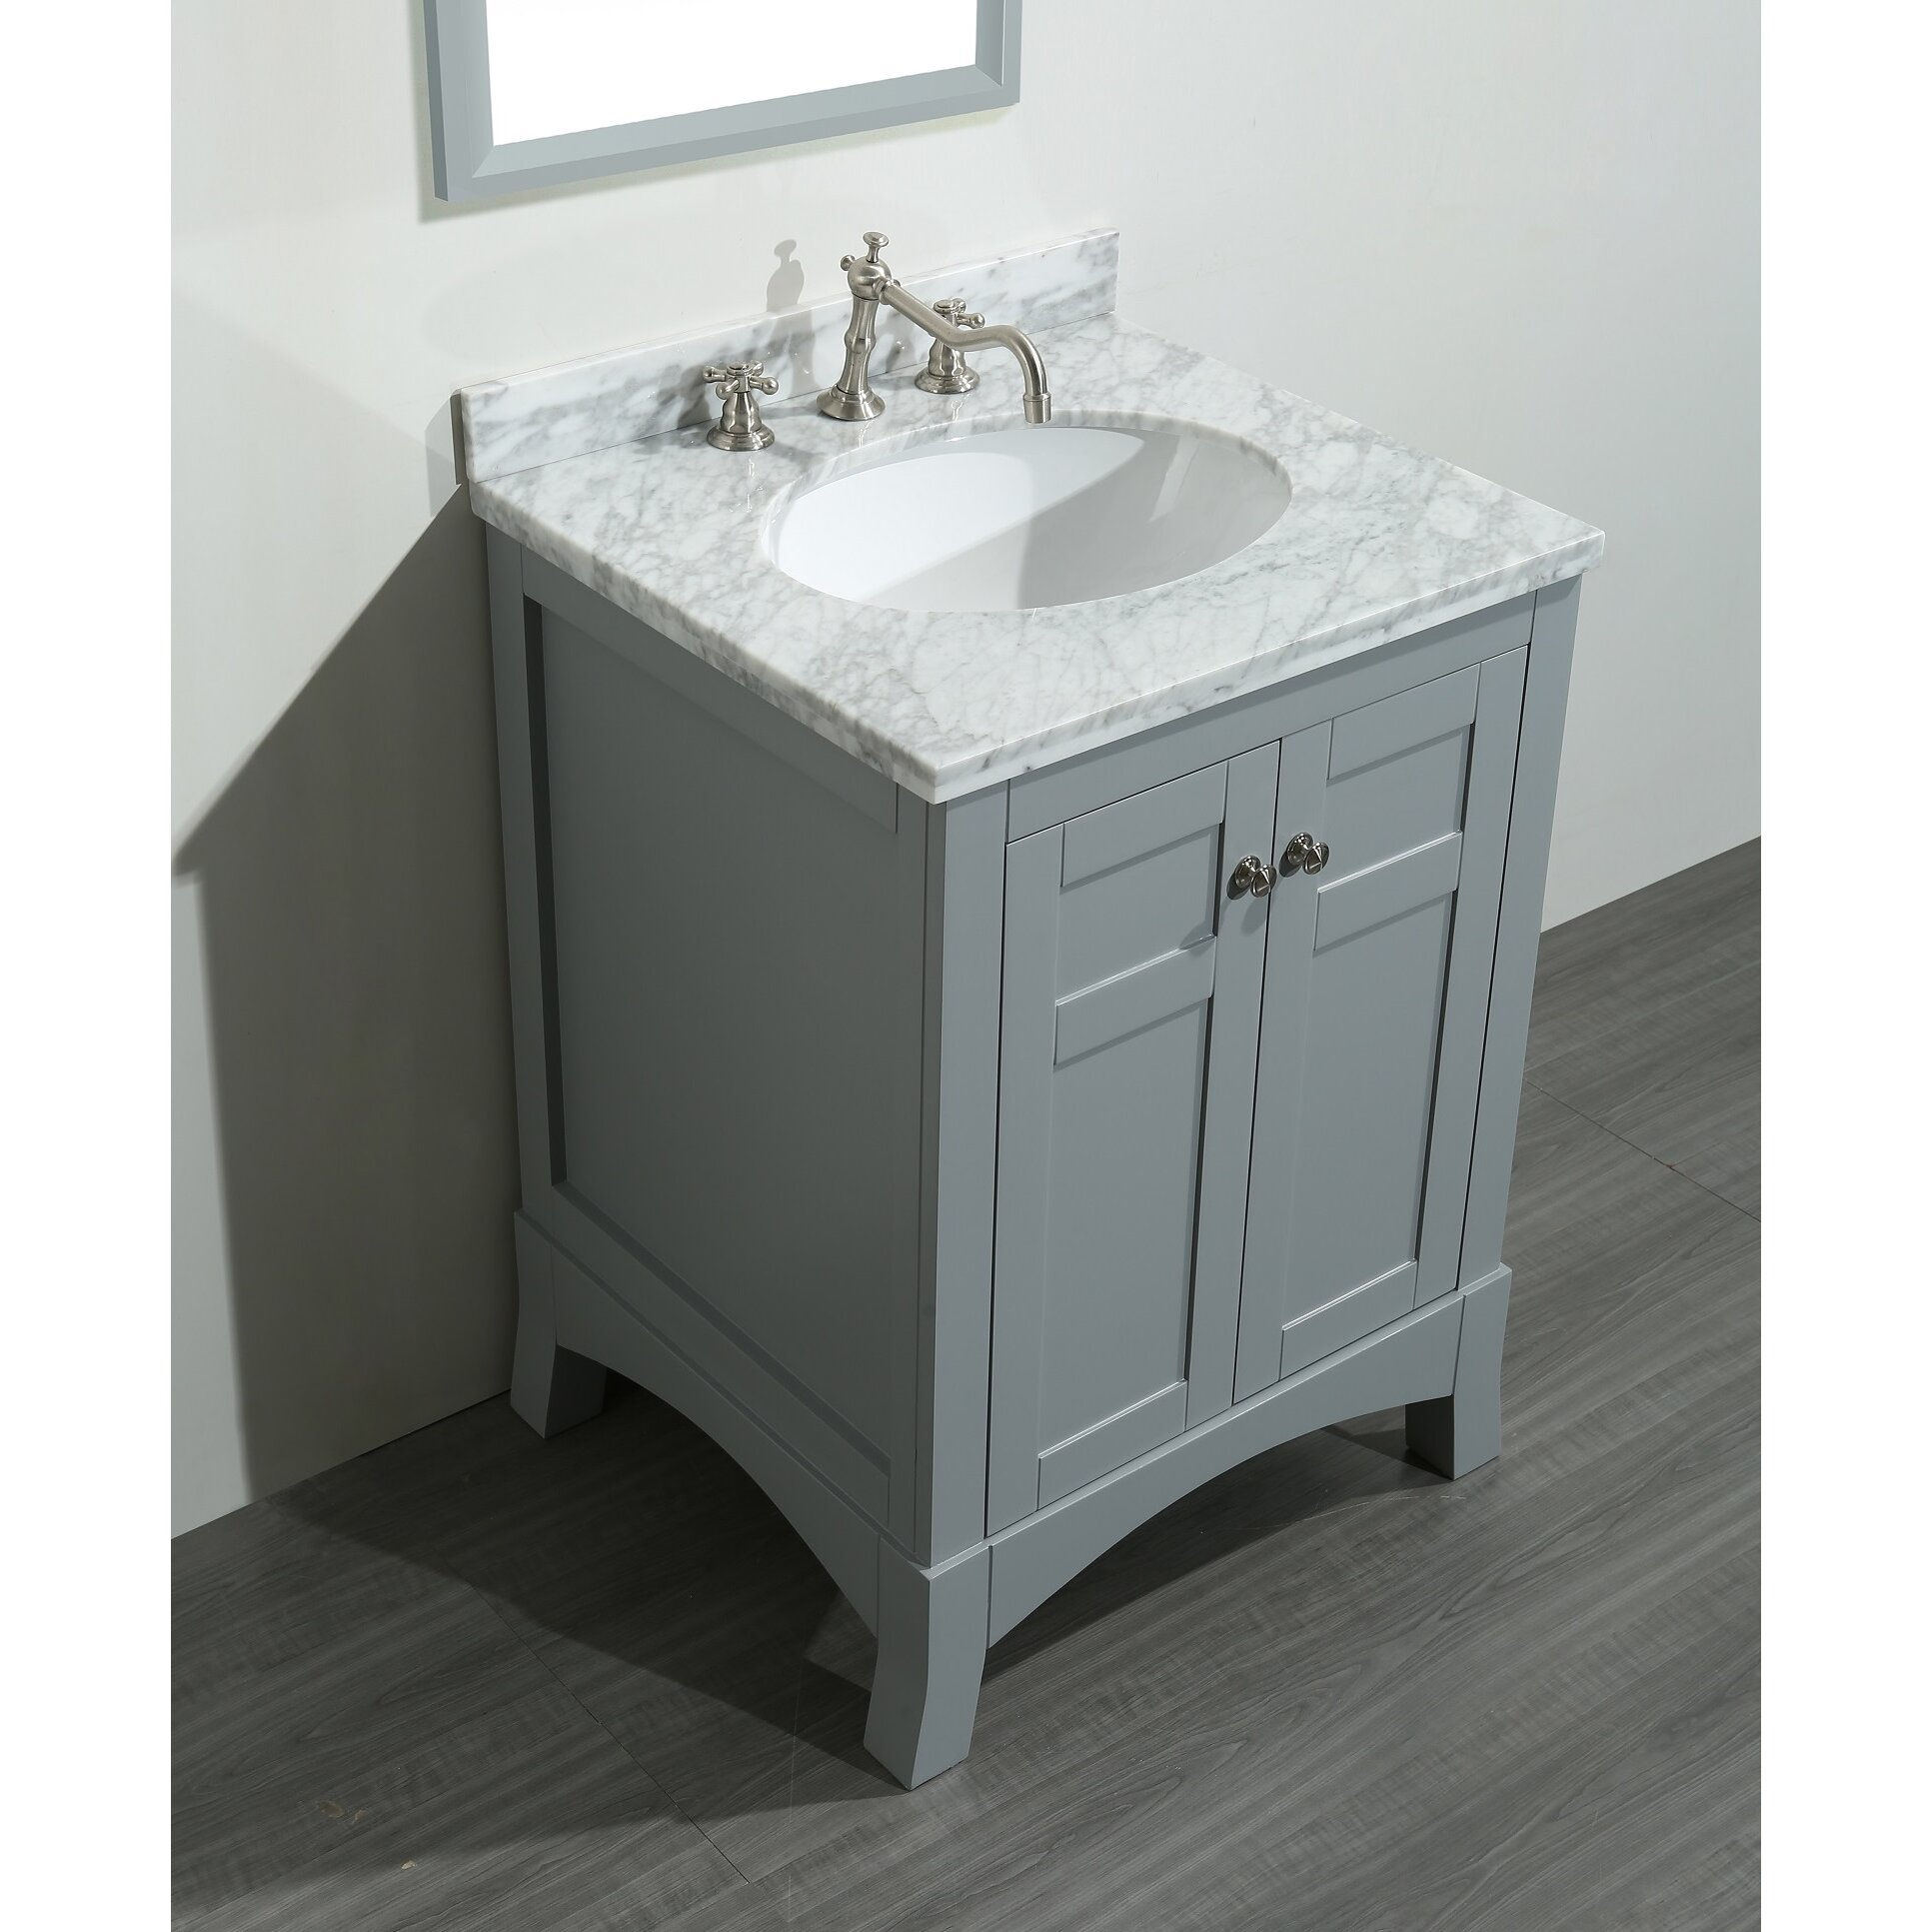 Elegant Bathroom Bathroom Vanities New York Renovation Bathroom Vanities Long